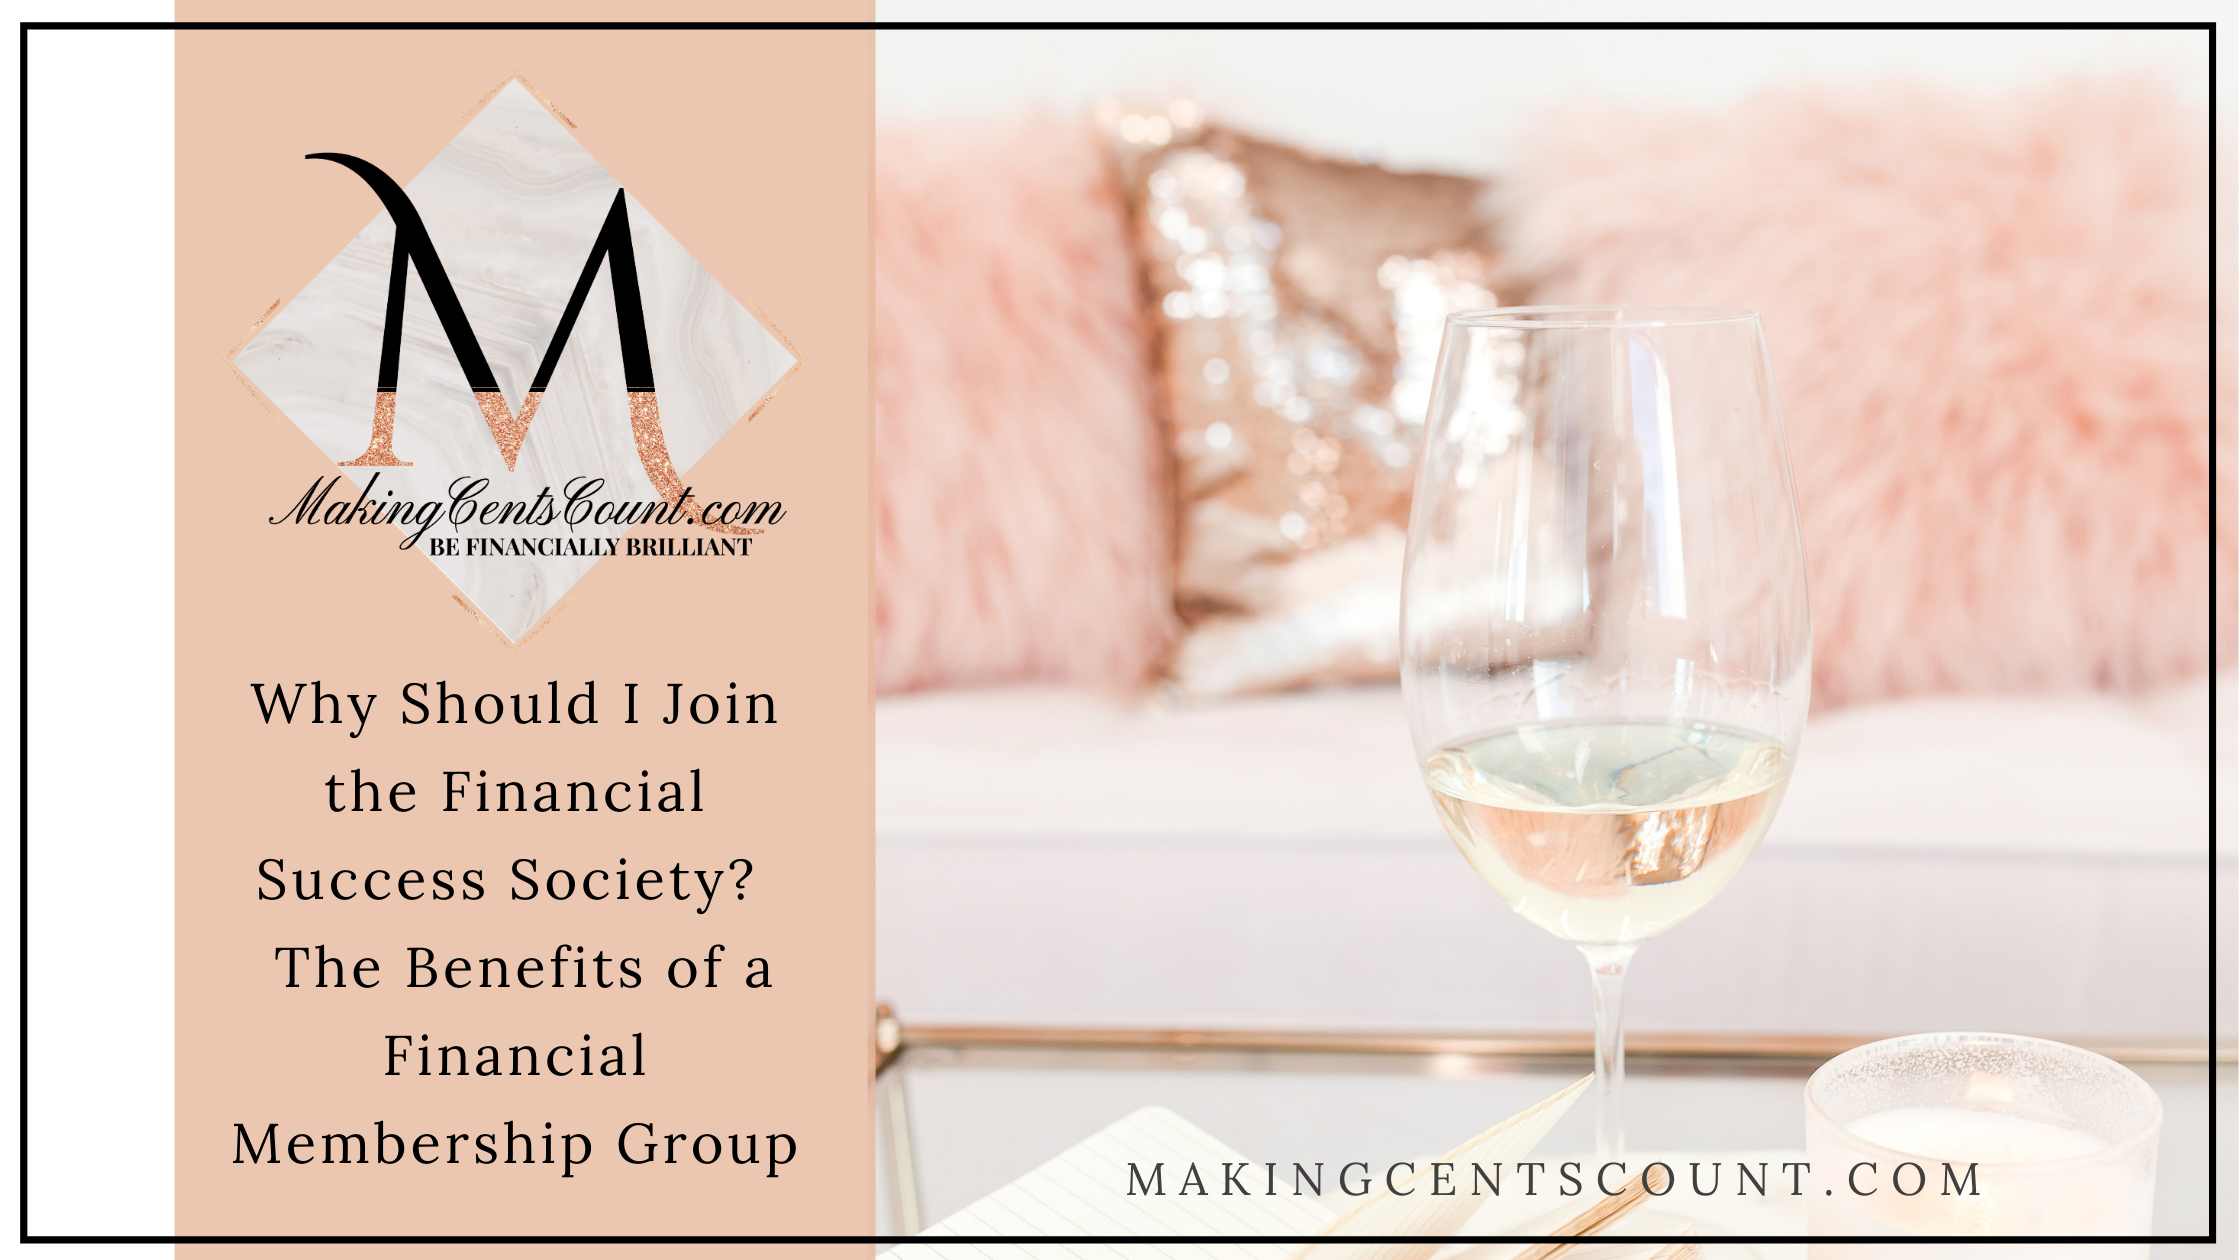 Why Should I Join the Financial Success Society? The Benefits of a Financial Membership Group